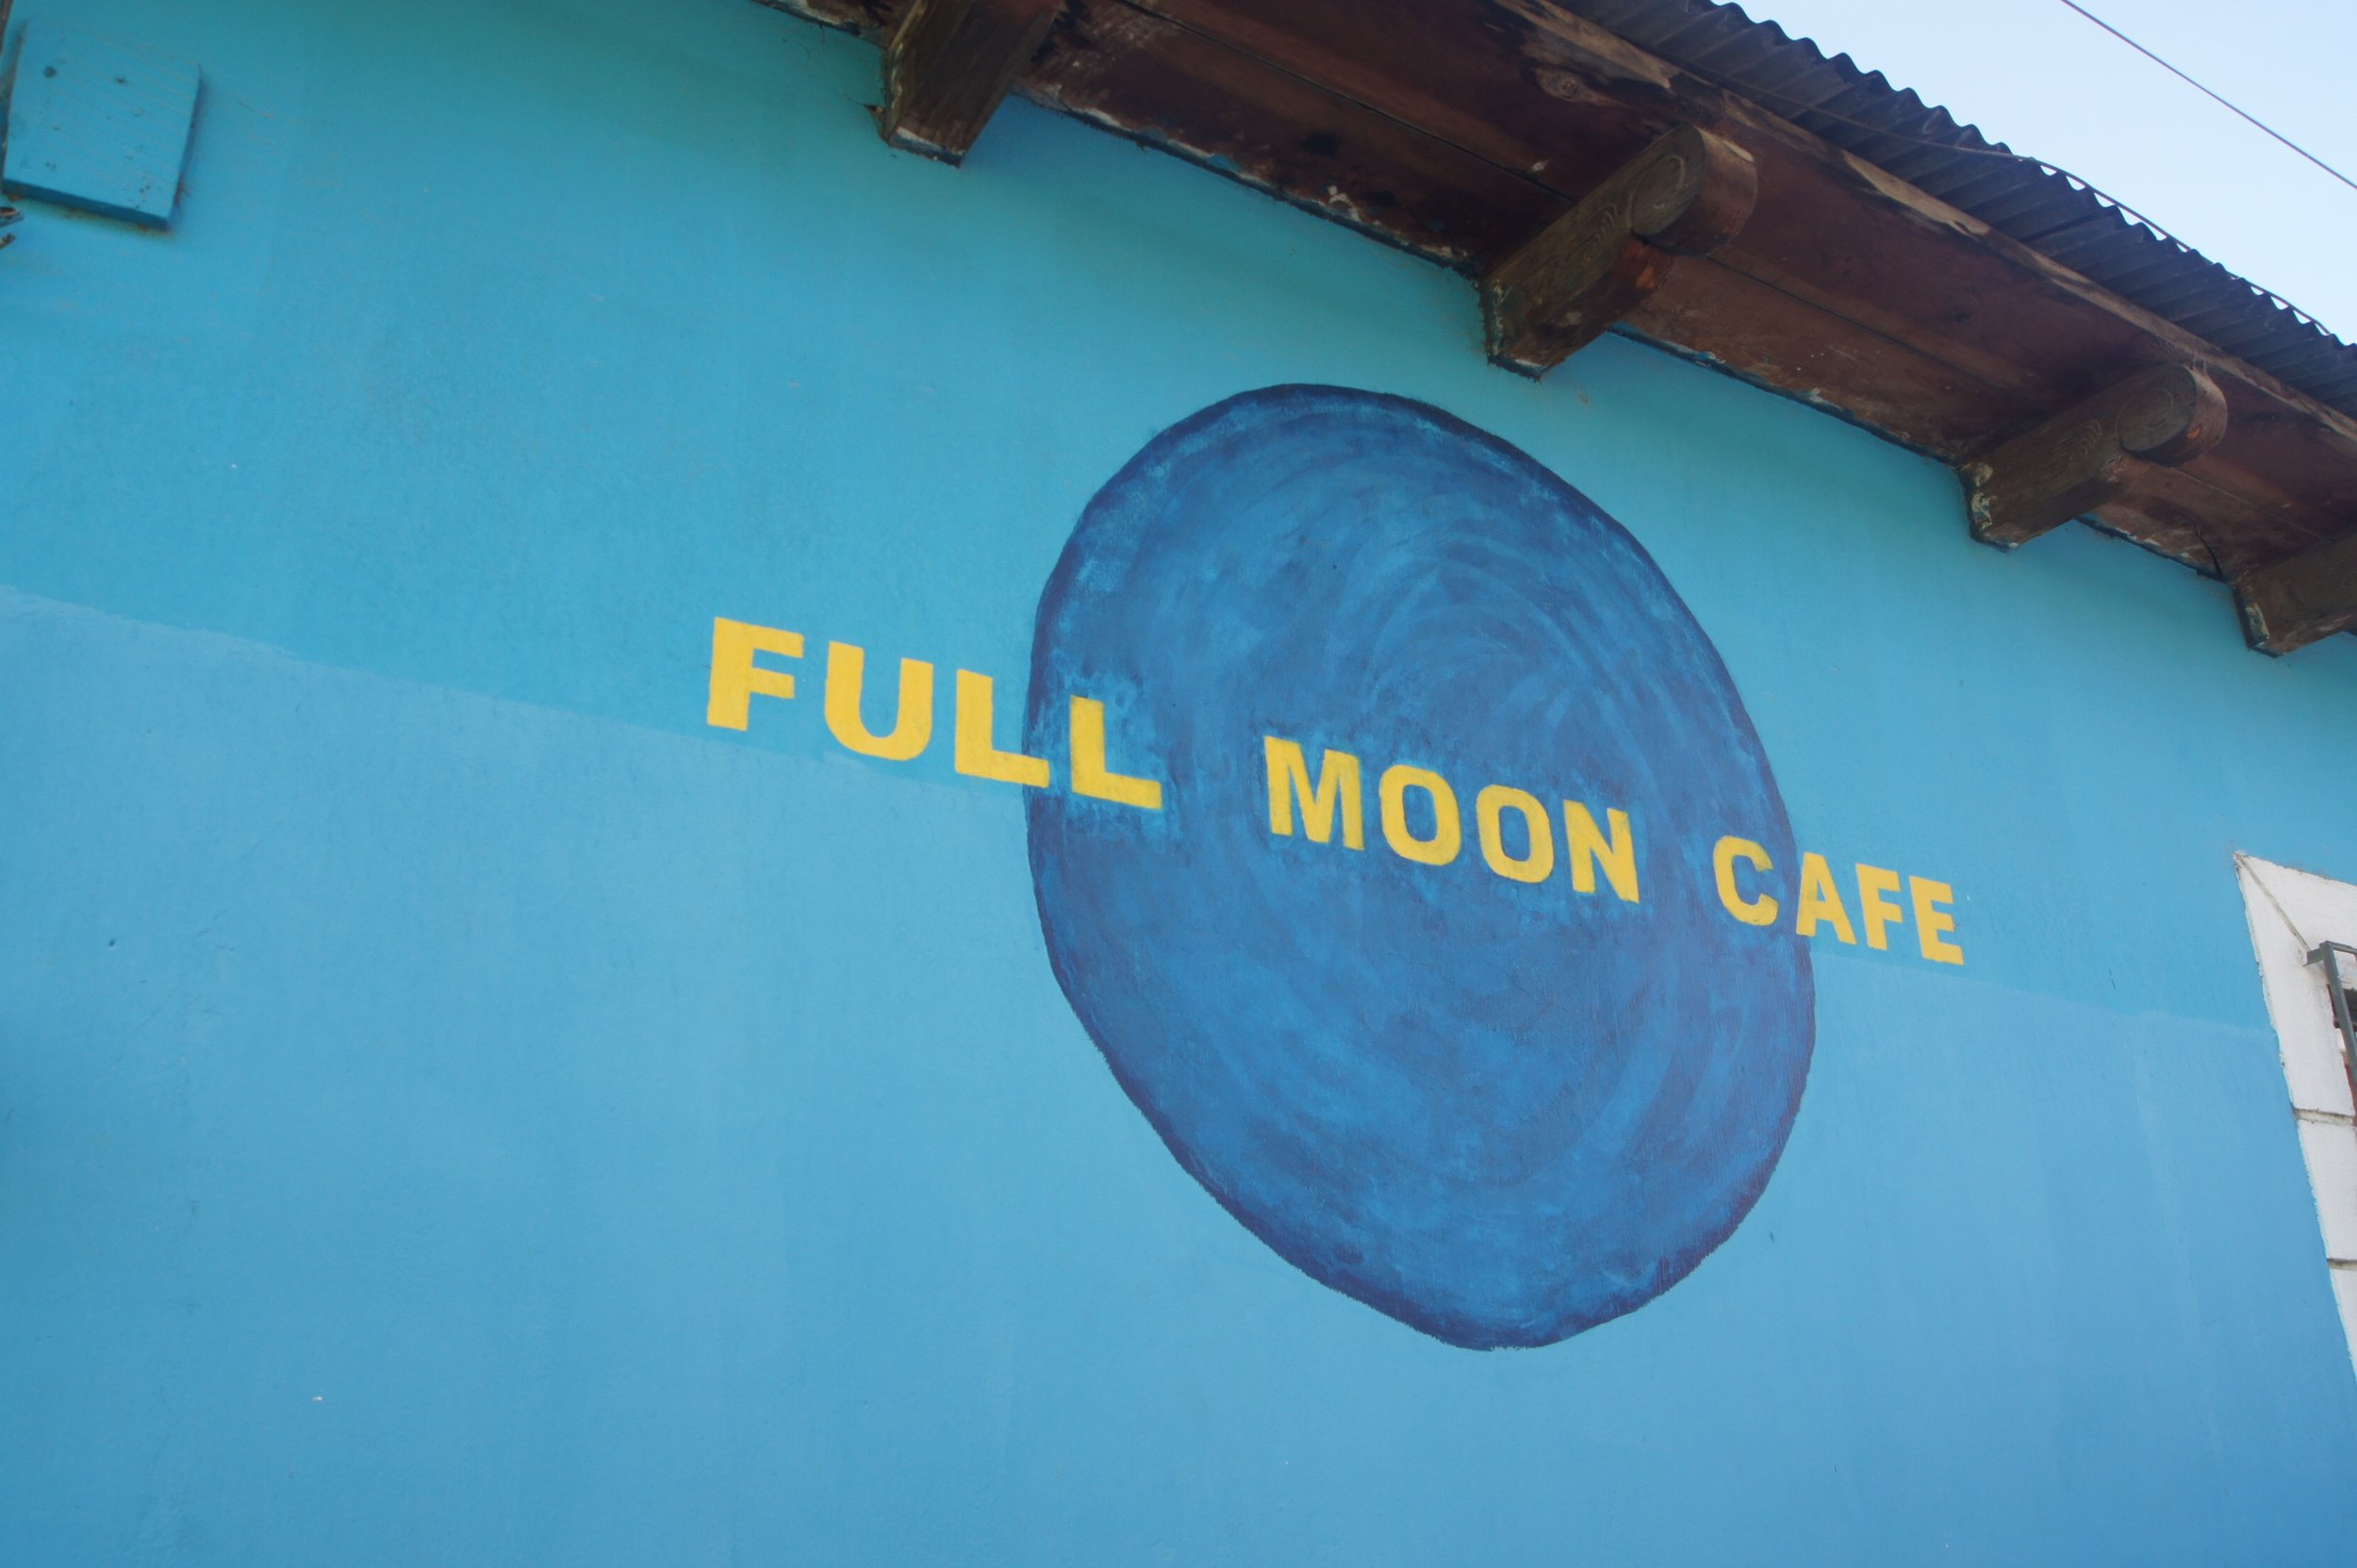 Full Moon Cafe in San Martin Jilotepeque.